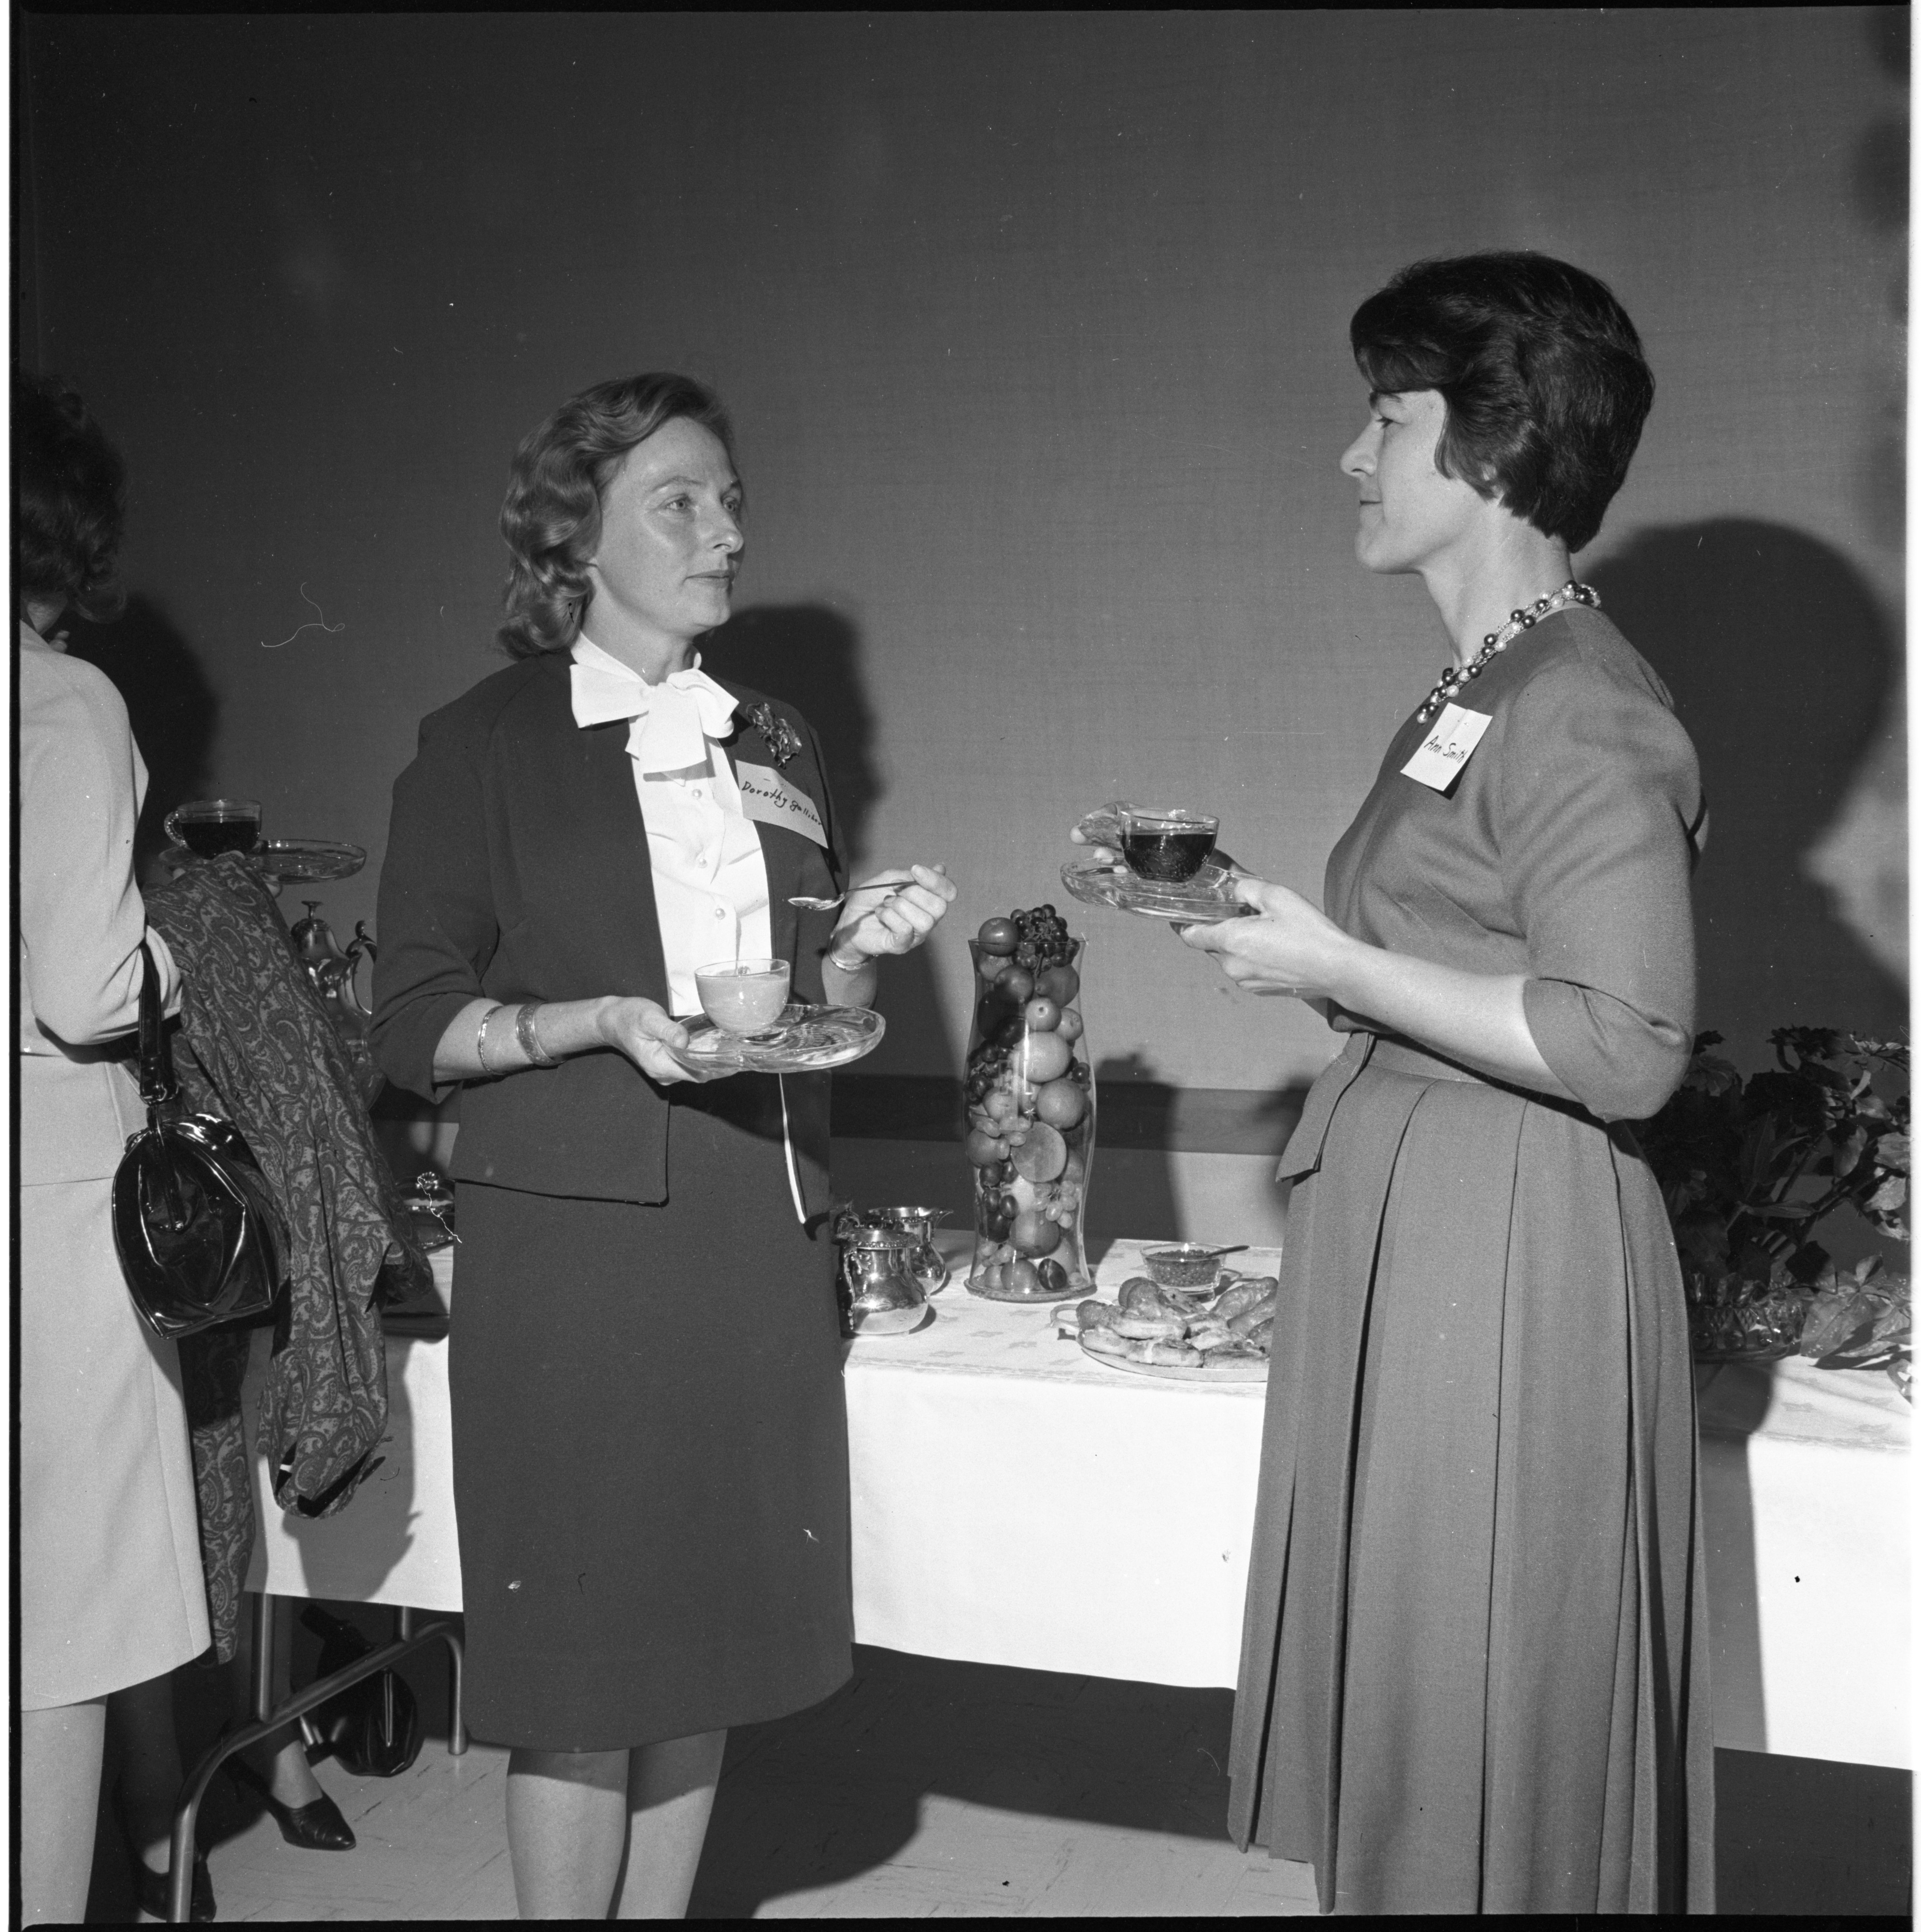 Ann Smith Welcomes Dorothy Galliher To Coffee With The League Of Women Voters, September 1963 image